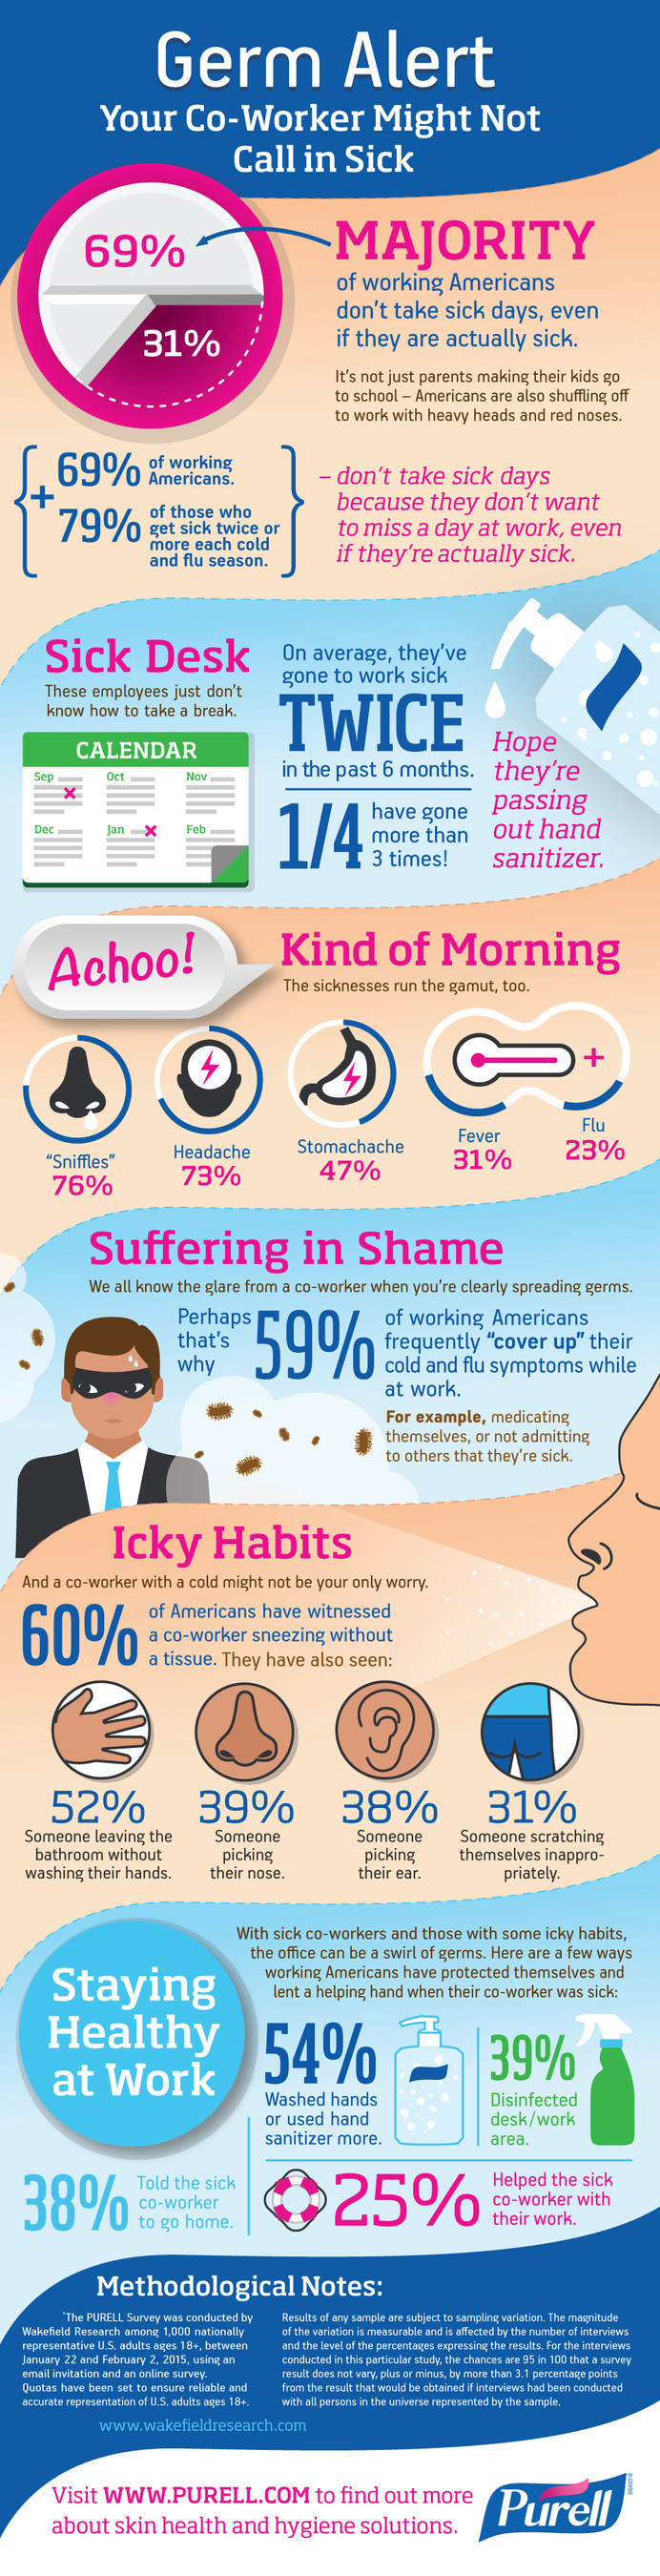 Wakefield Research survey shows workers often go to work sick. Reports indicate more than 80 percent of illnesses are transmitted by the hands, a key to how illness-causing germs can spread quickly in an office. For more surprising facts about how Americans handle illness during cold and flu season, view our infographic, Germ Alert: Your Co-Worker Might Not Call In Sick.